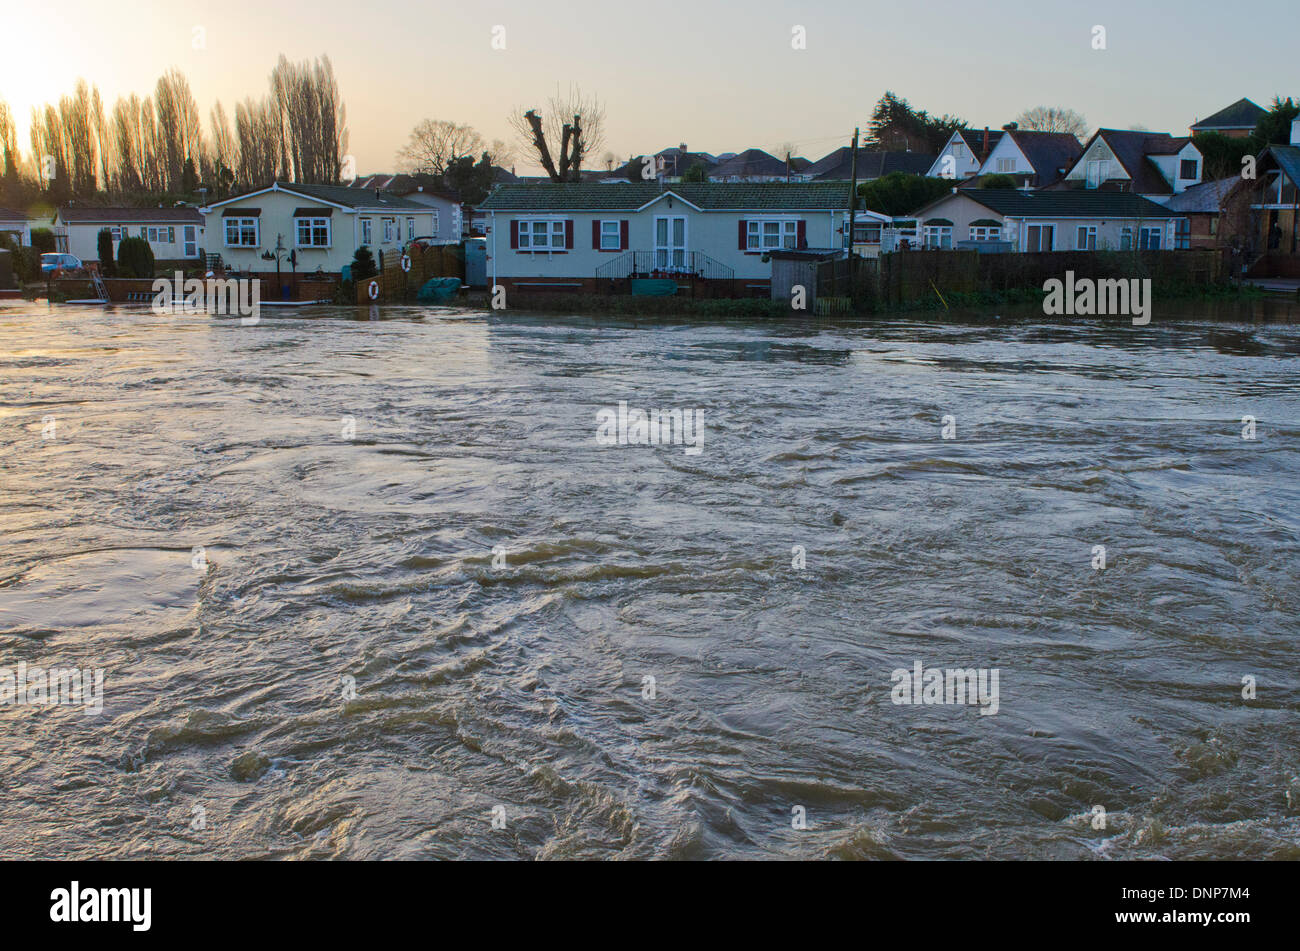 Iford, Christchurch, Dorset, UK. 3rd January 2014. Residents evacuated from the Iford Bridge Home Park site watch water levels rise. - Stock Image